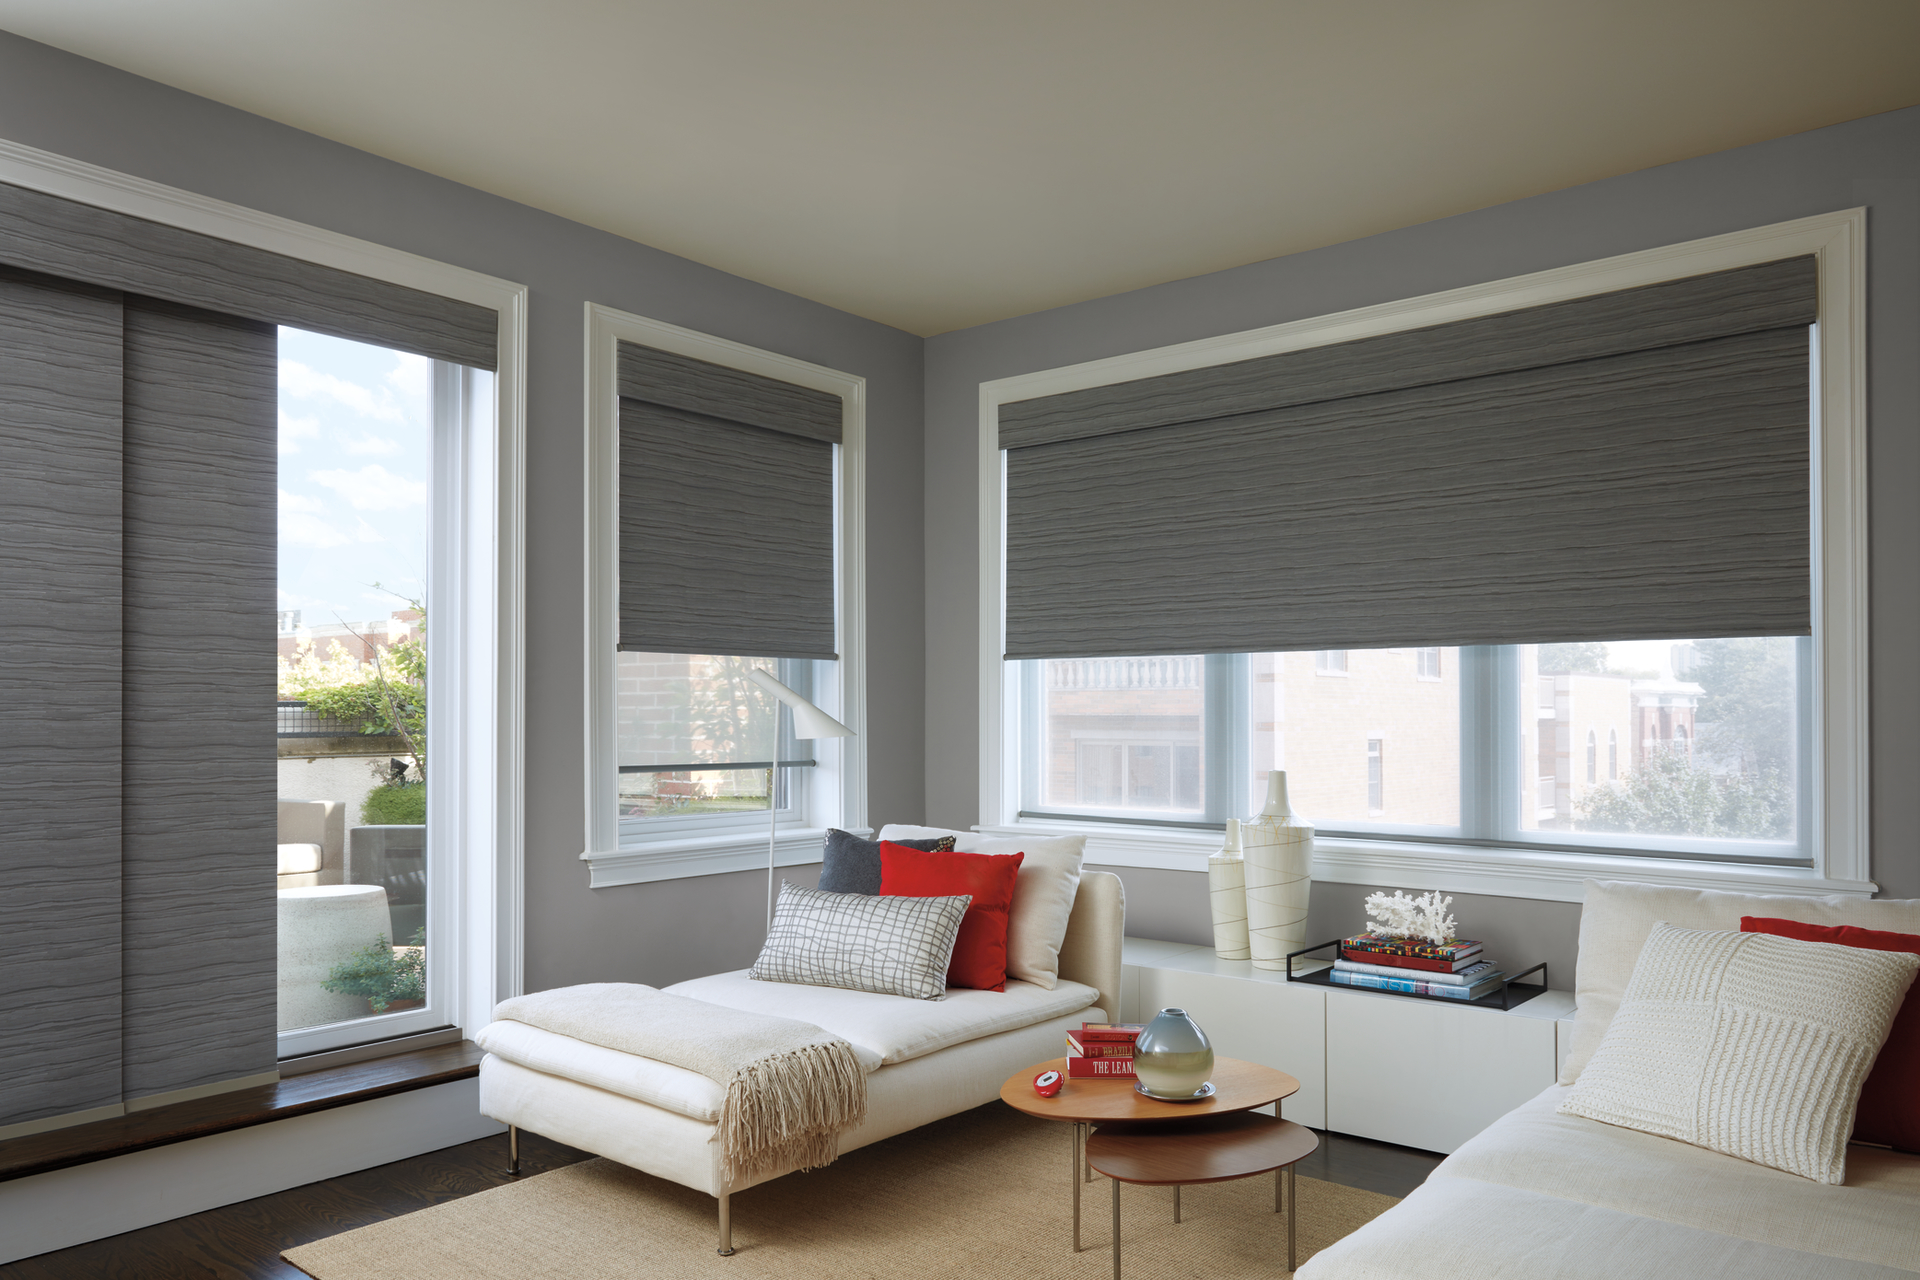 living room shades window coverings alleen s custom window treatments alleens custom window 22563